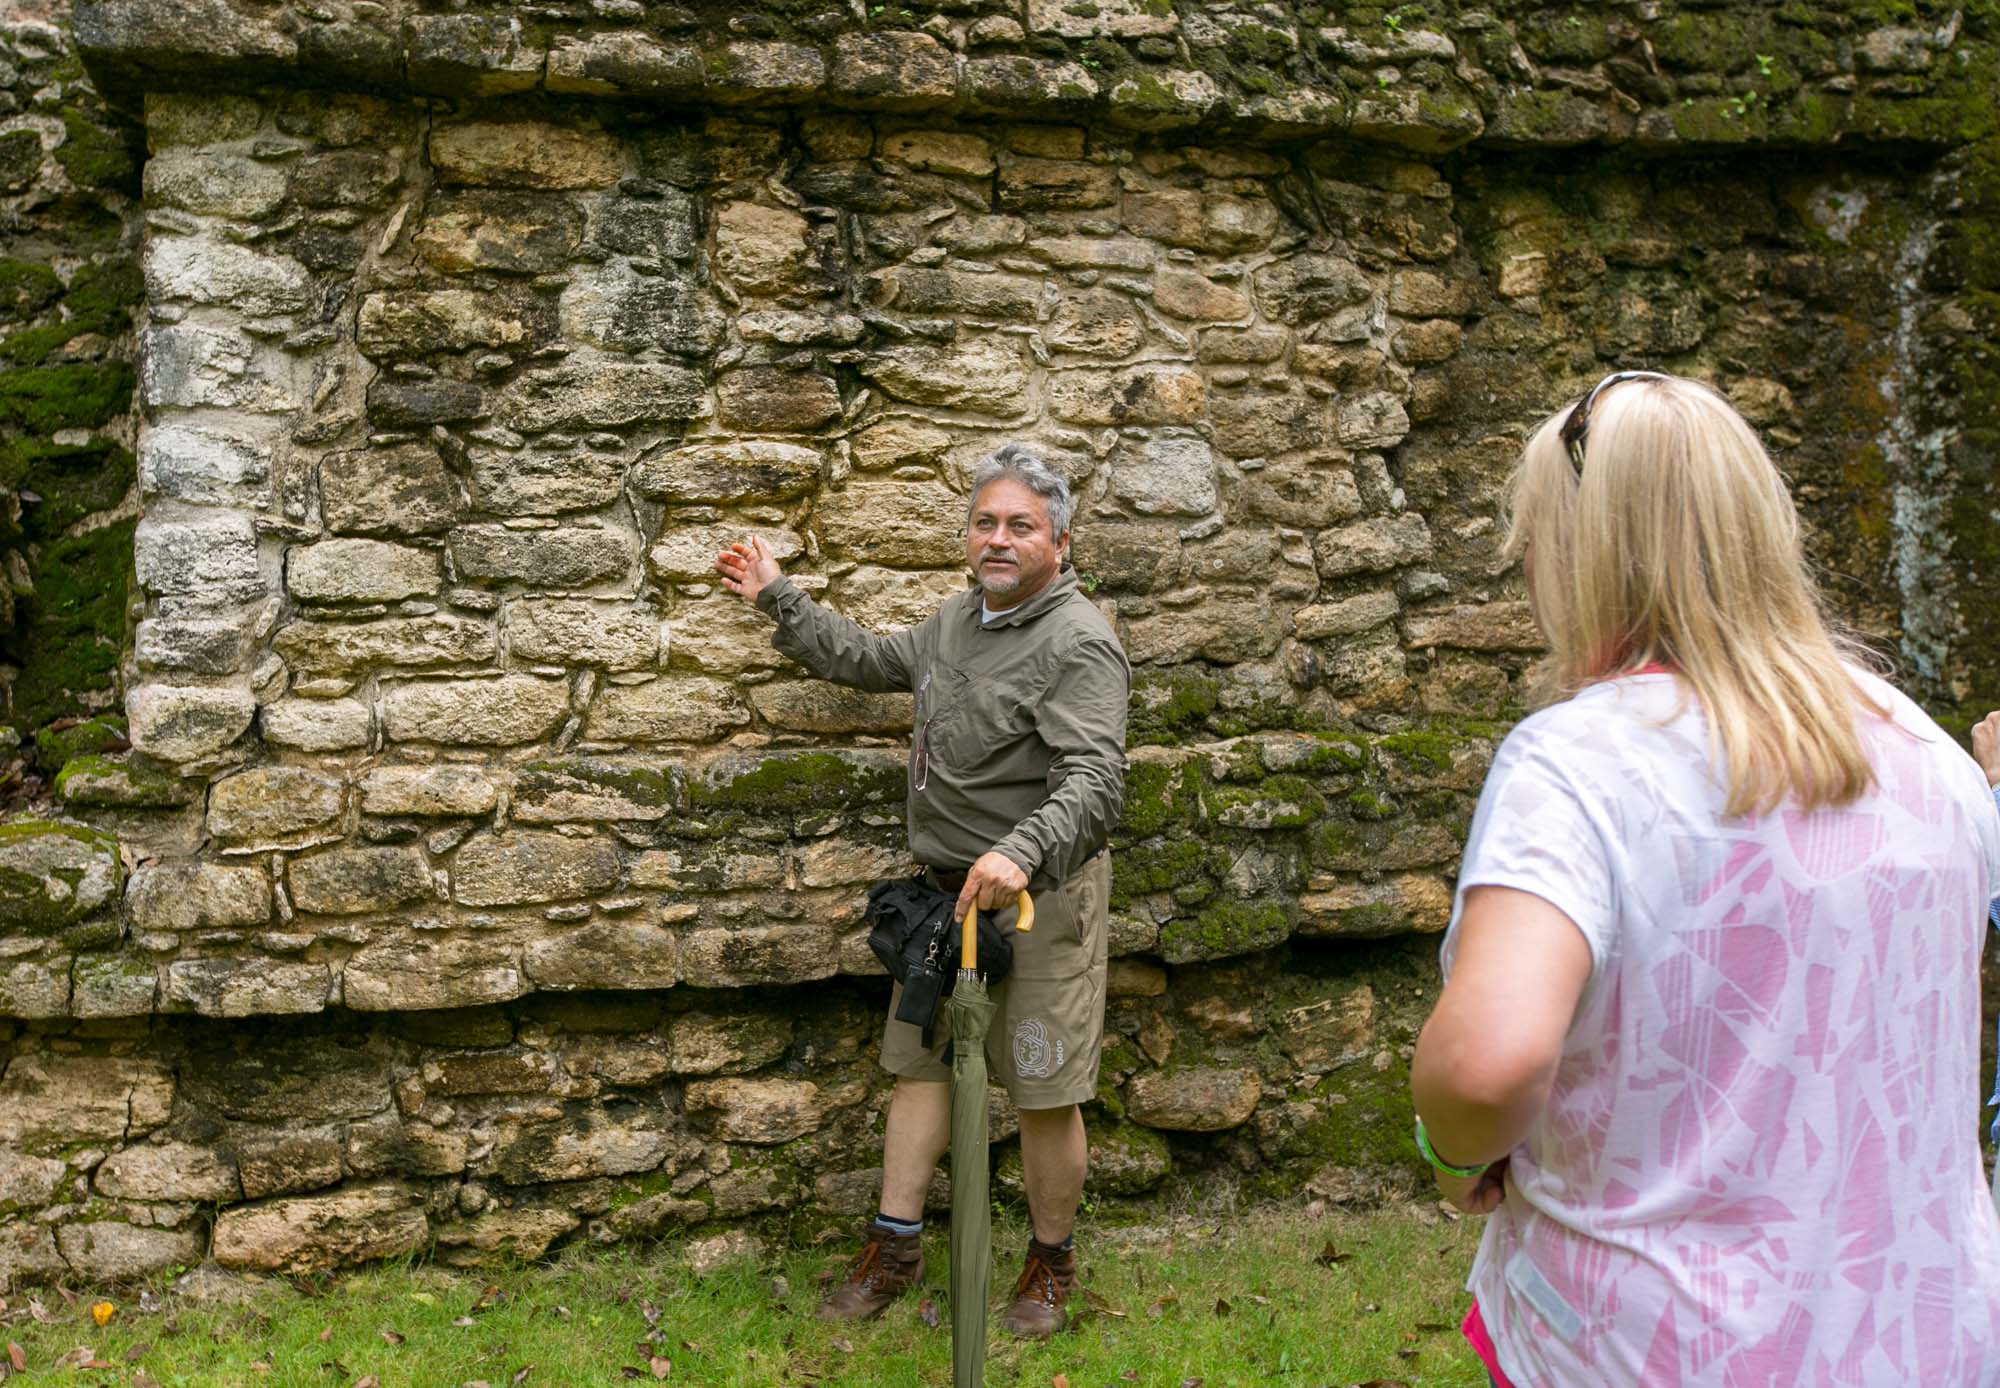 Our tour guide Hugo at Mayan ruins of Dzibanche in Mexico